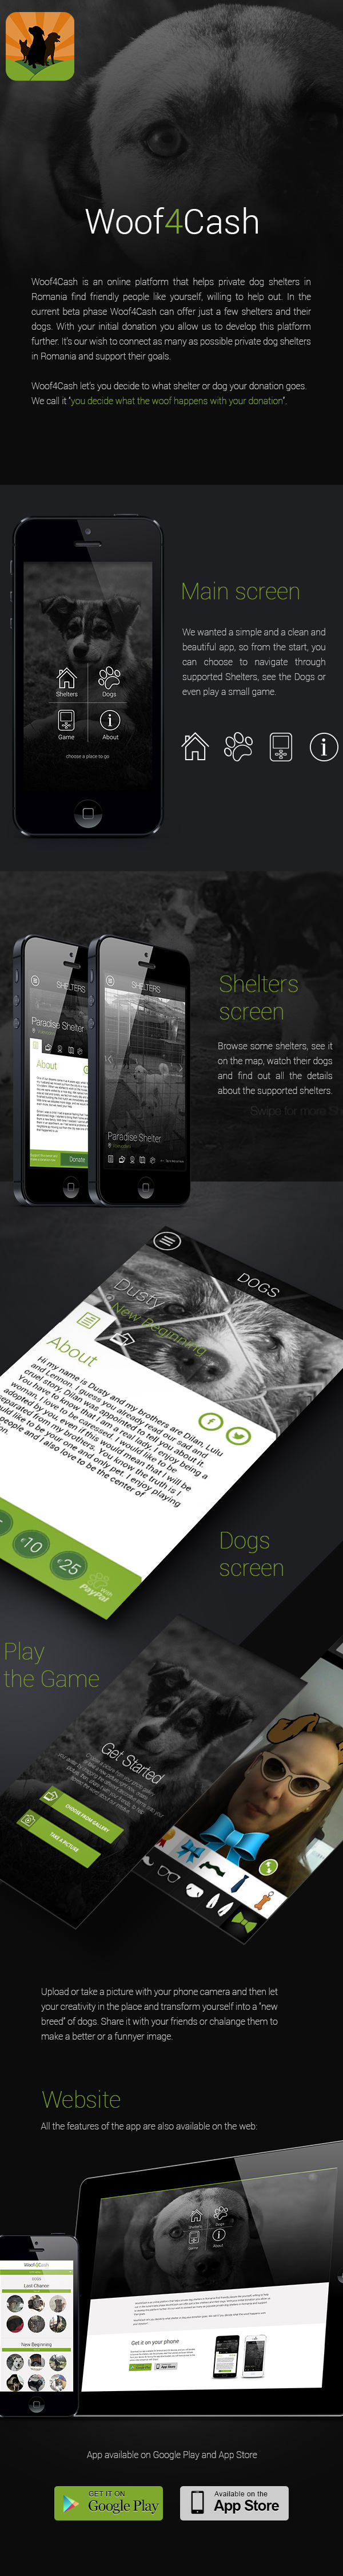 ios android Website app design mobile application